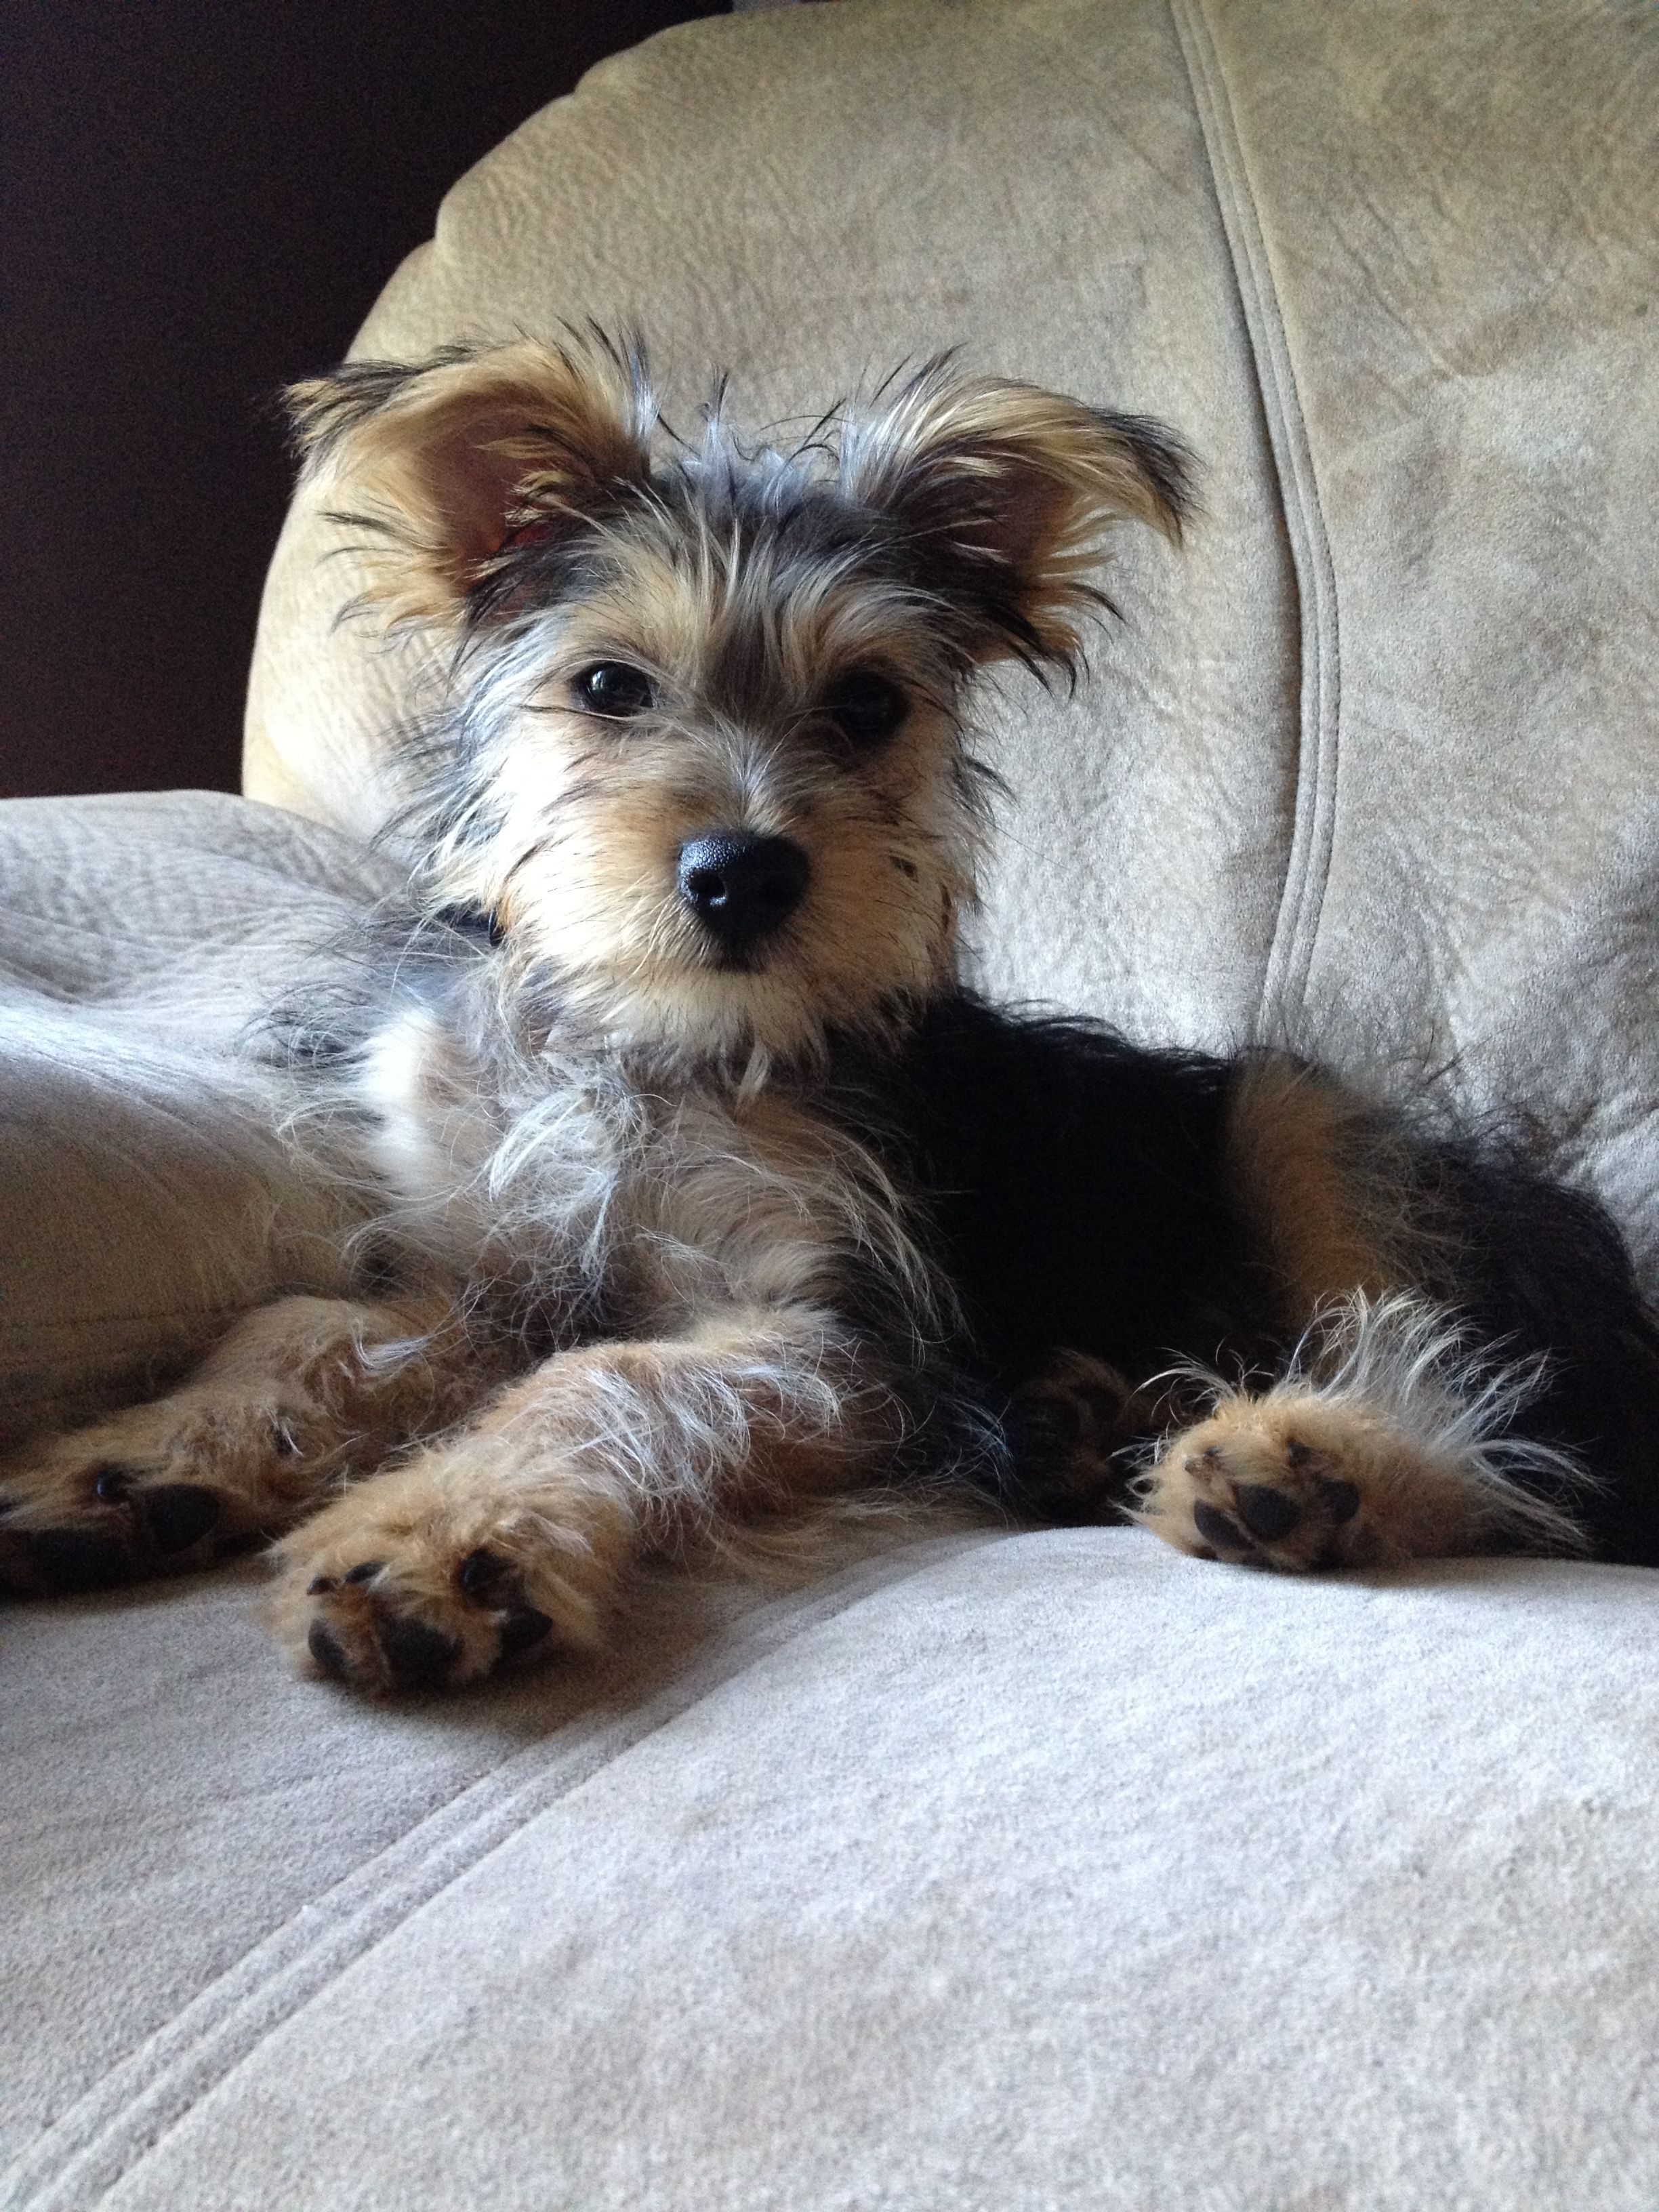 Best plane for aerial photography - RC Groups Pictures of yorkie terrier mix